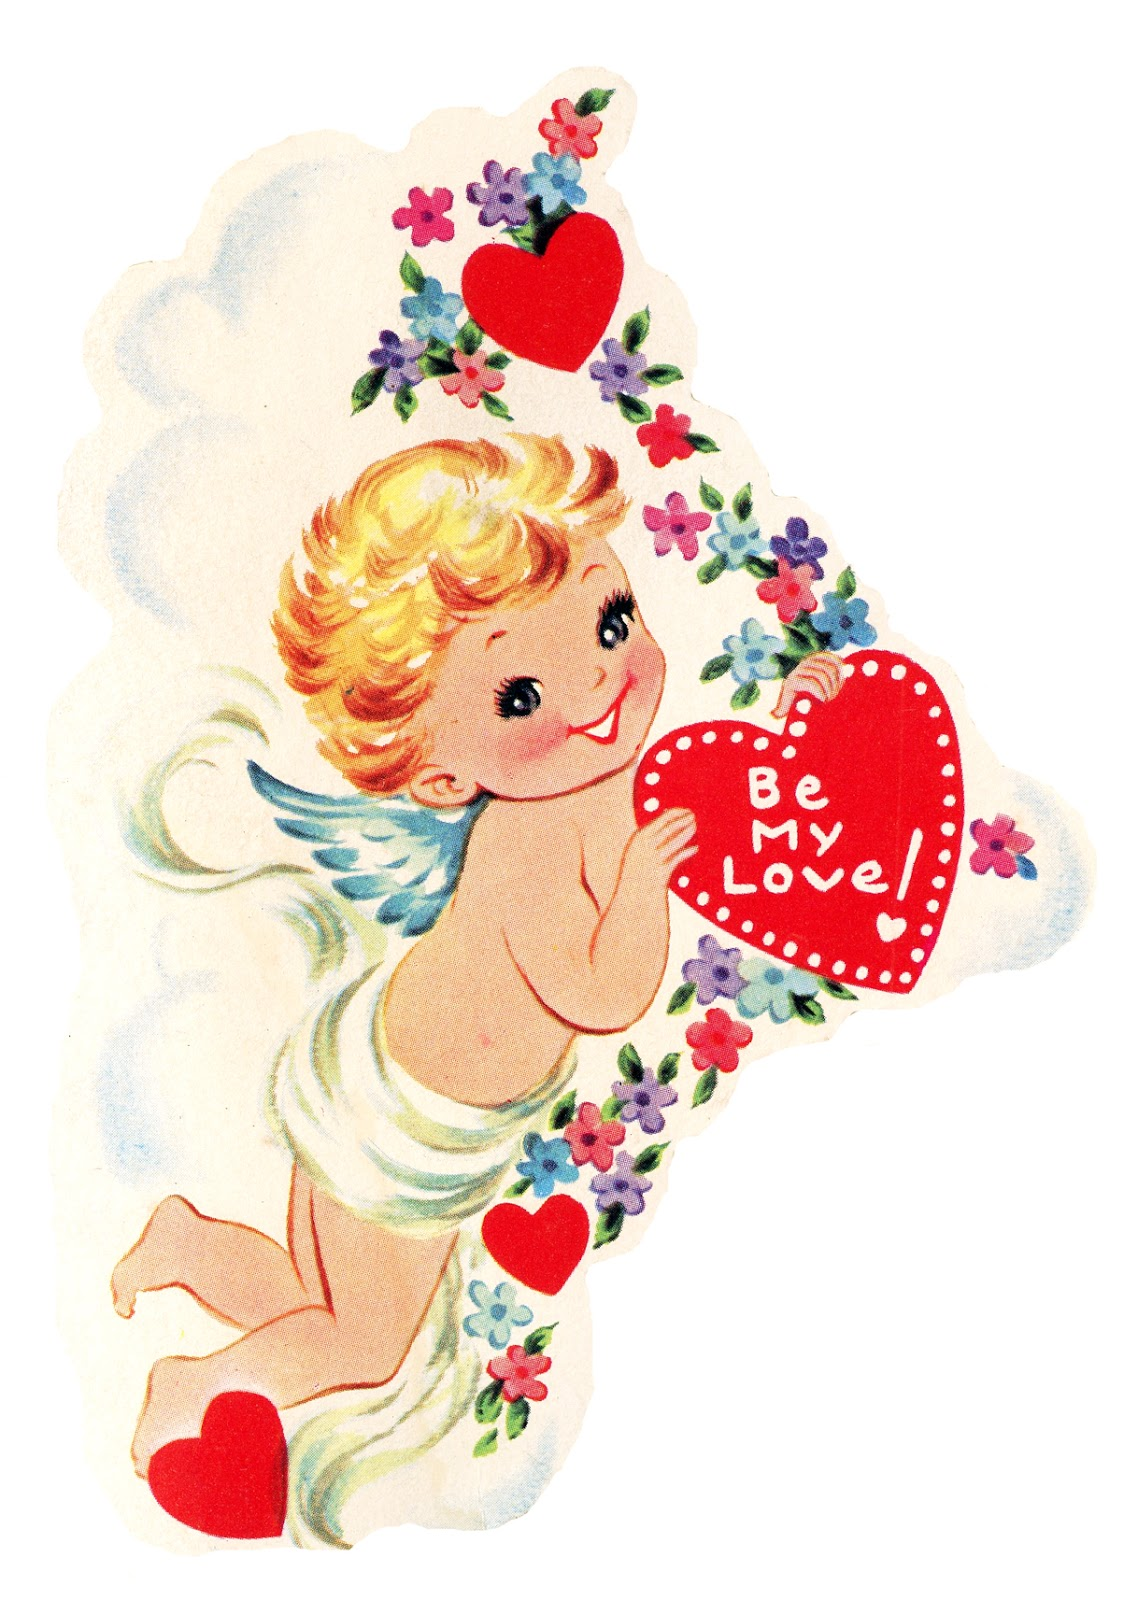 cupid images stickers vintage vintage heart valentine cupid cupid vintage image cupid vintage the with images fairy free graphics